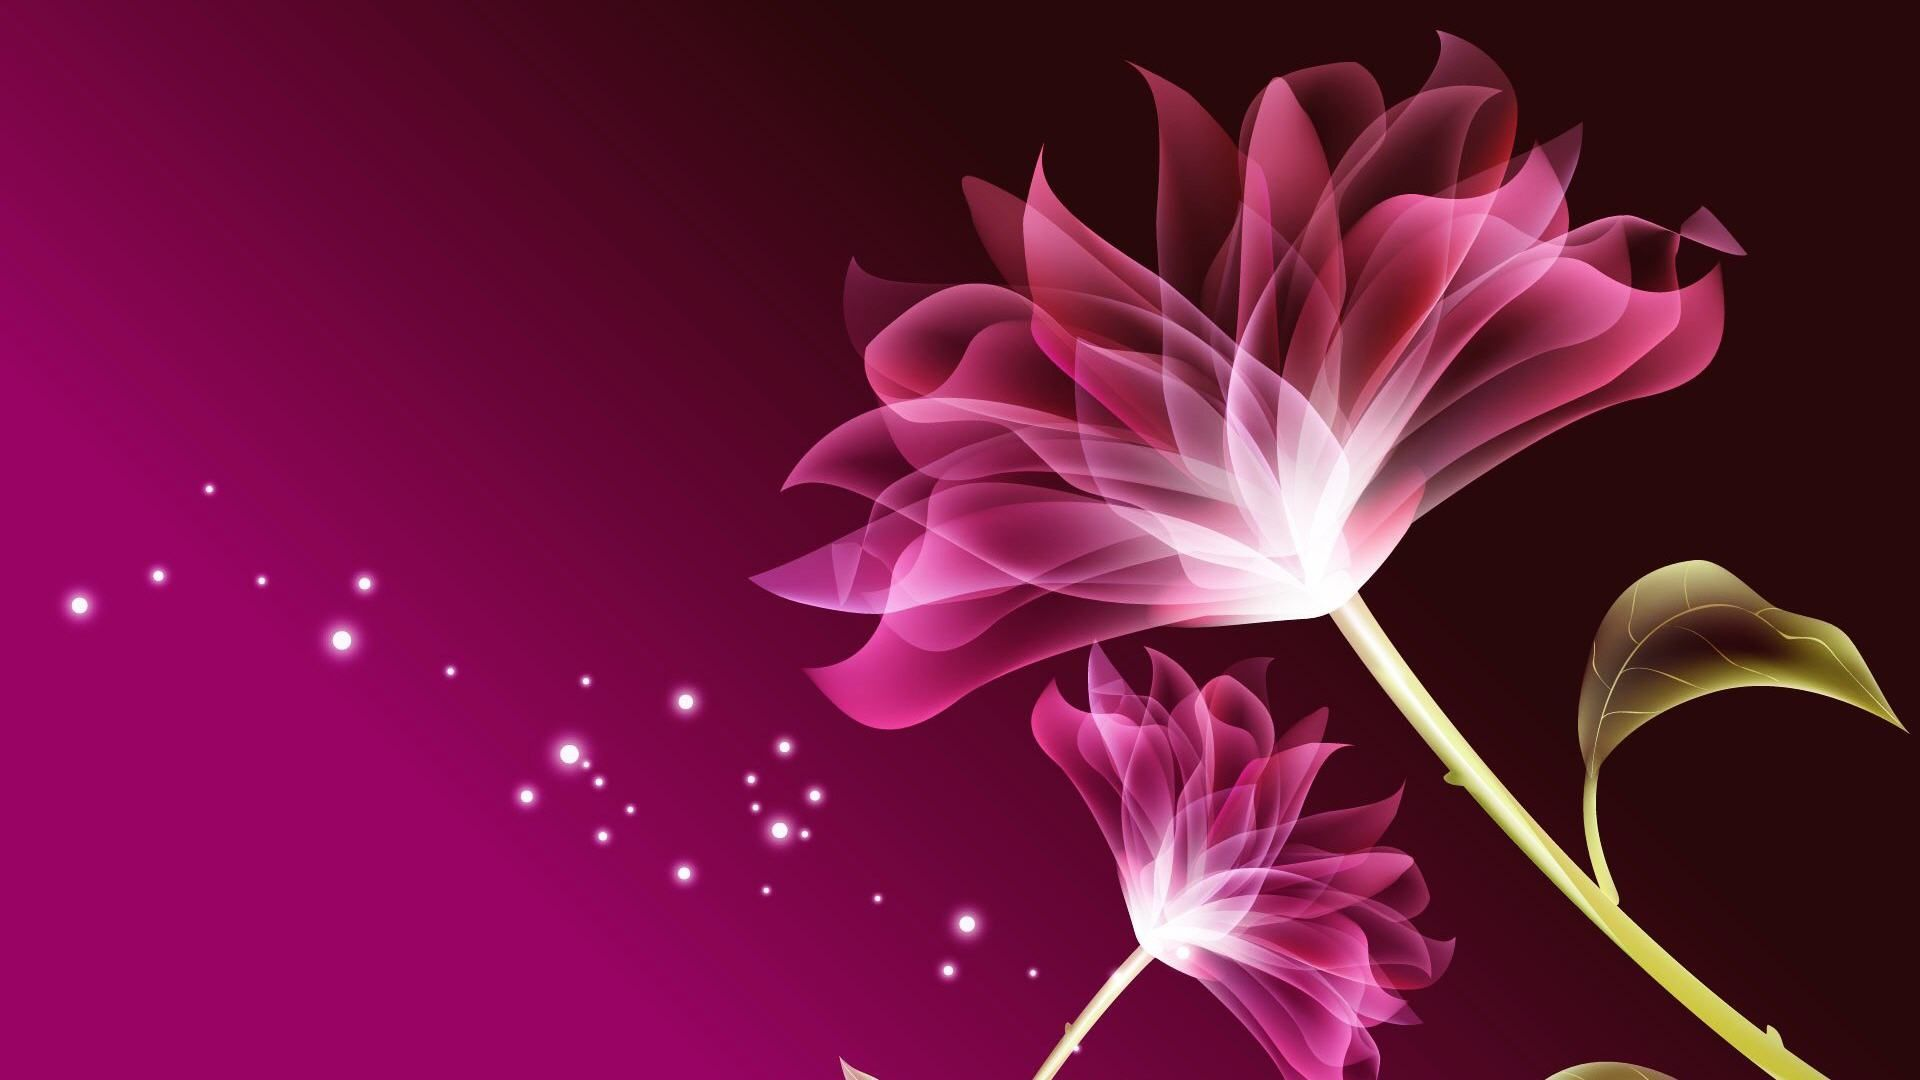 3d pink beautiful flower wallpaper pretty flowers in 2018 3d pink beautiful flower wallpaper izmirmasajfo